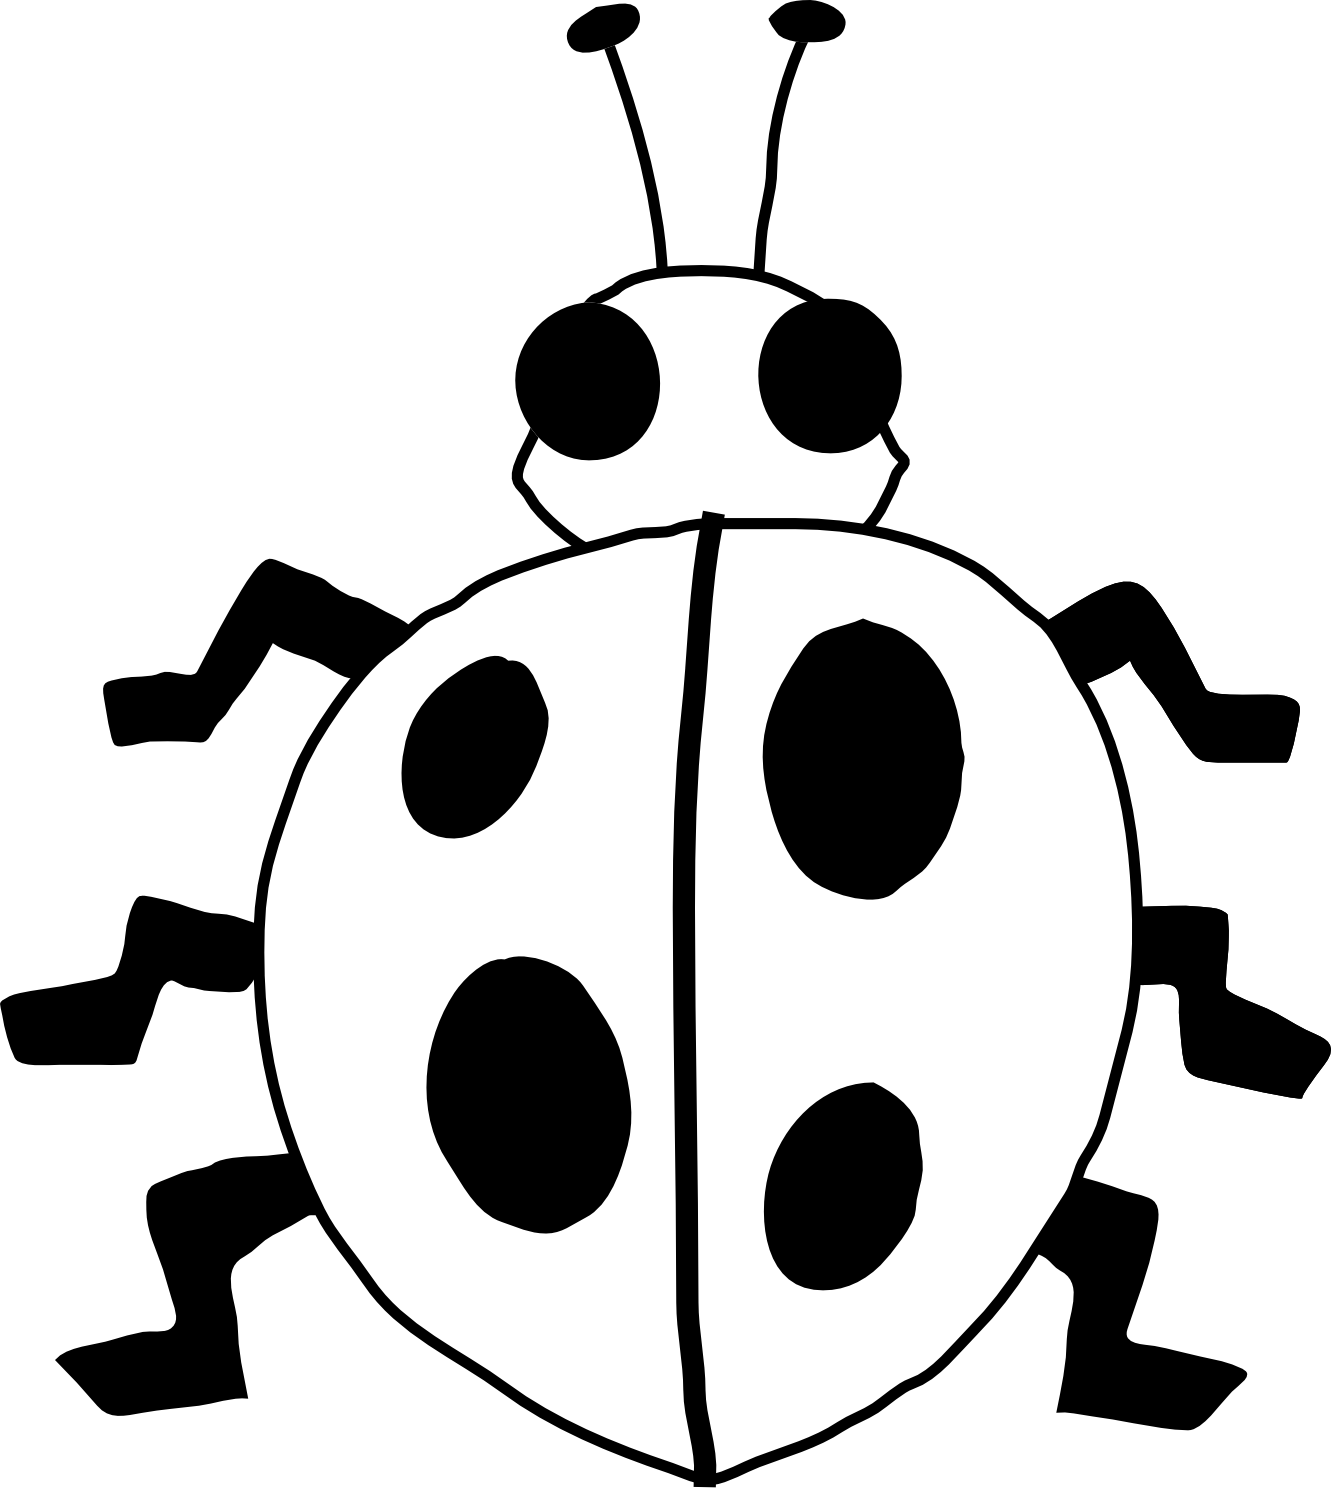 Book clipart vector picture black and white download ladybug 21 black white line art flower scalable vector graphics ... picture black and white download